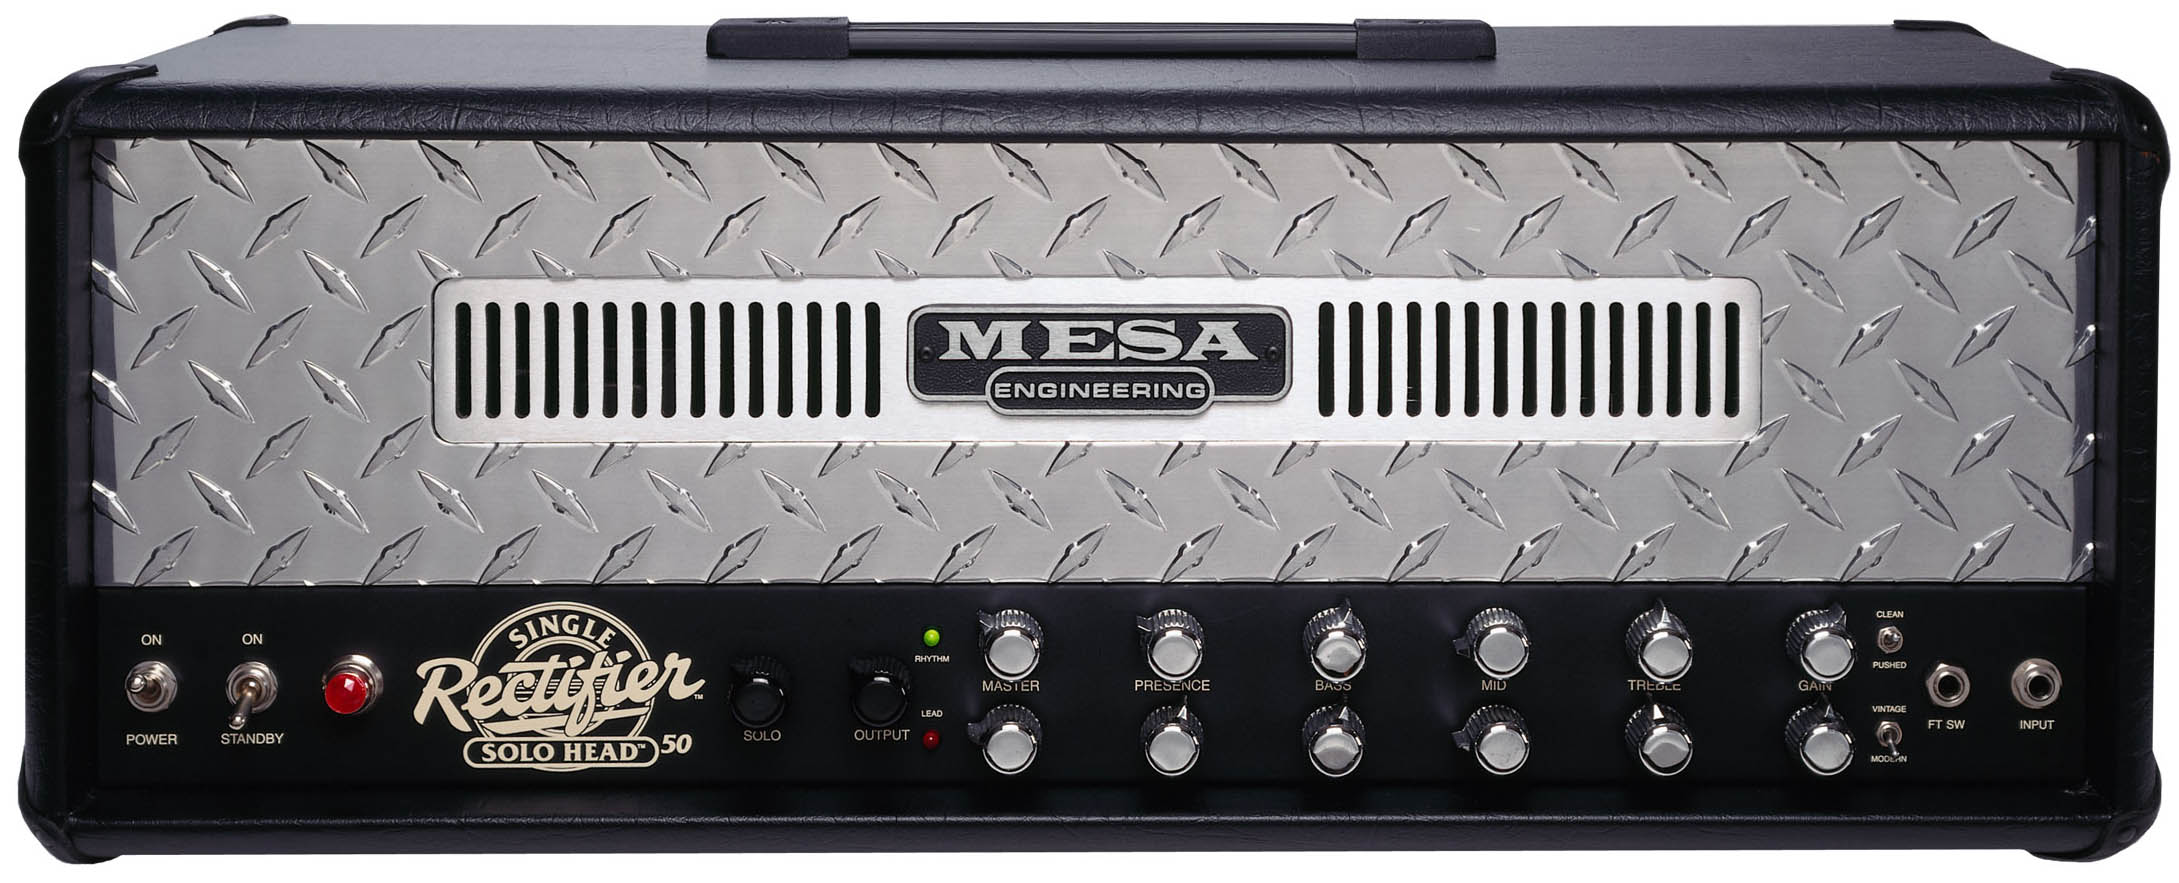 Rig-Talk View topic - Dual rectifier serial number question